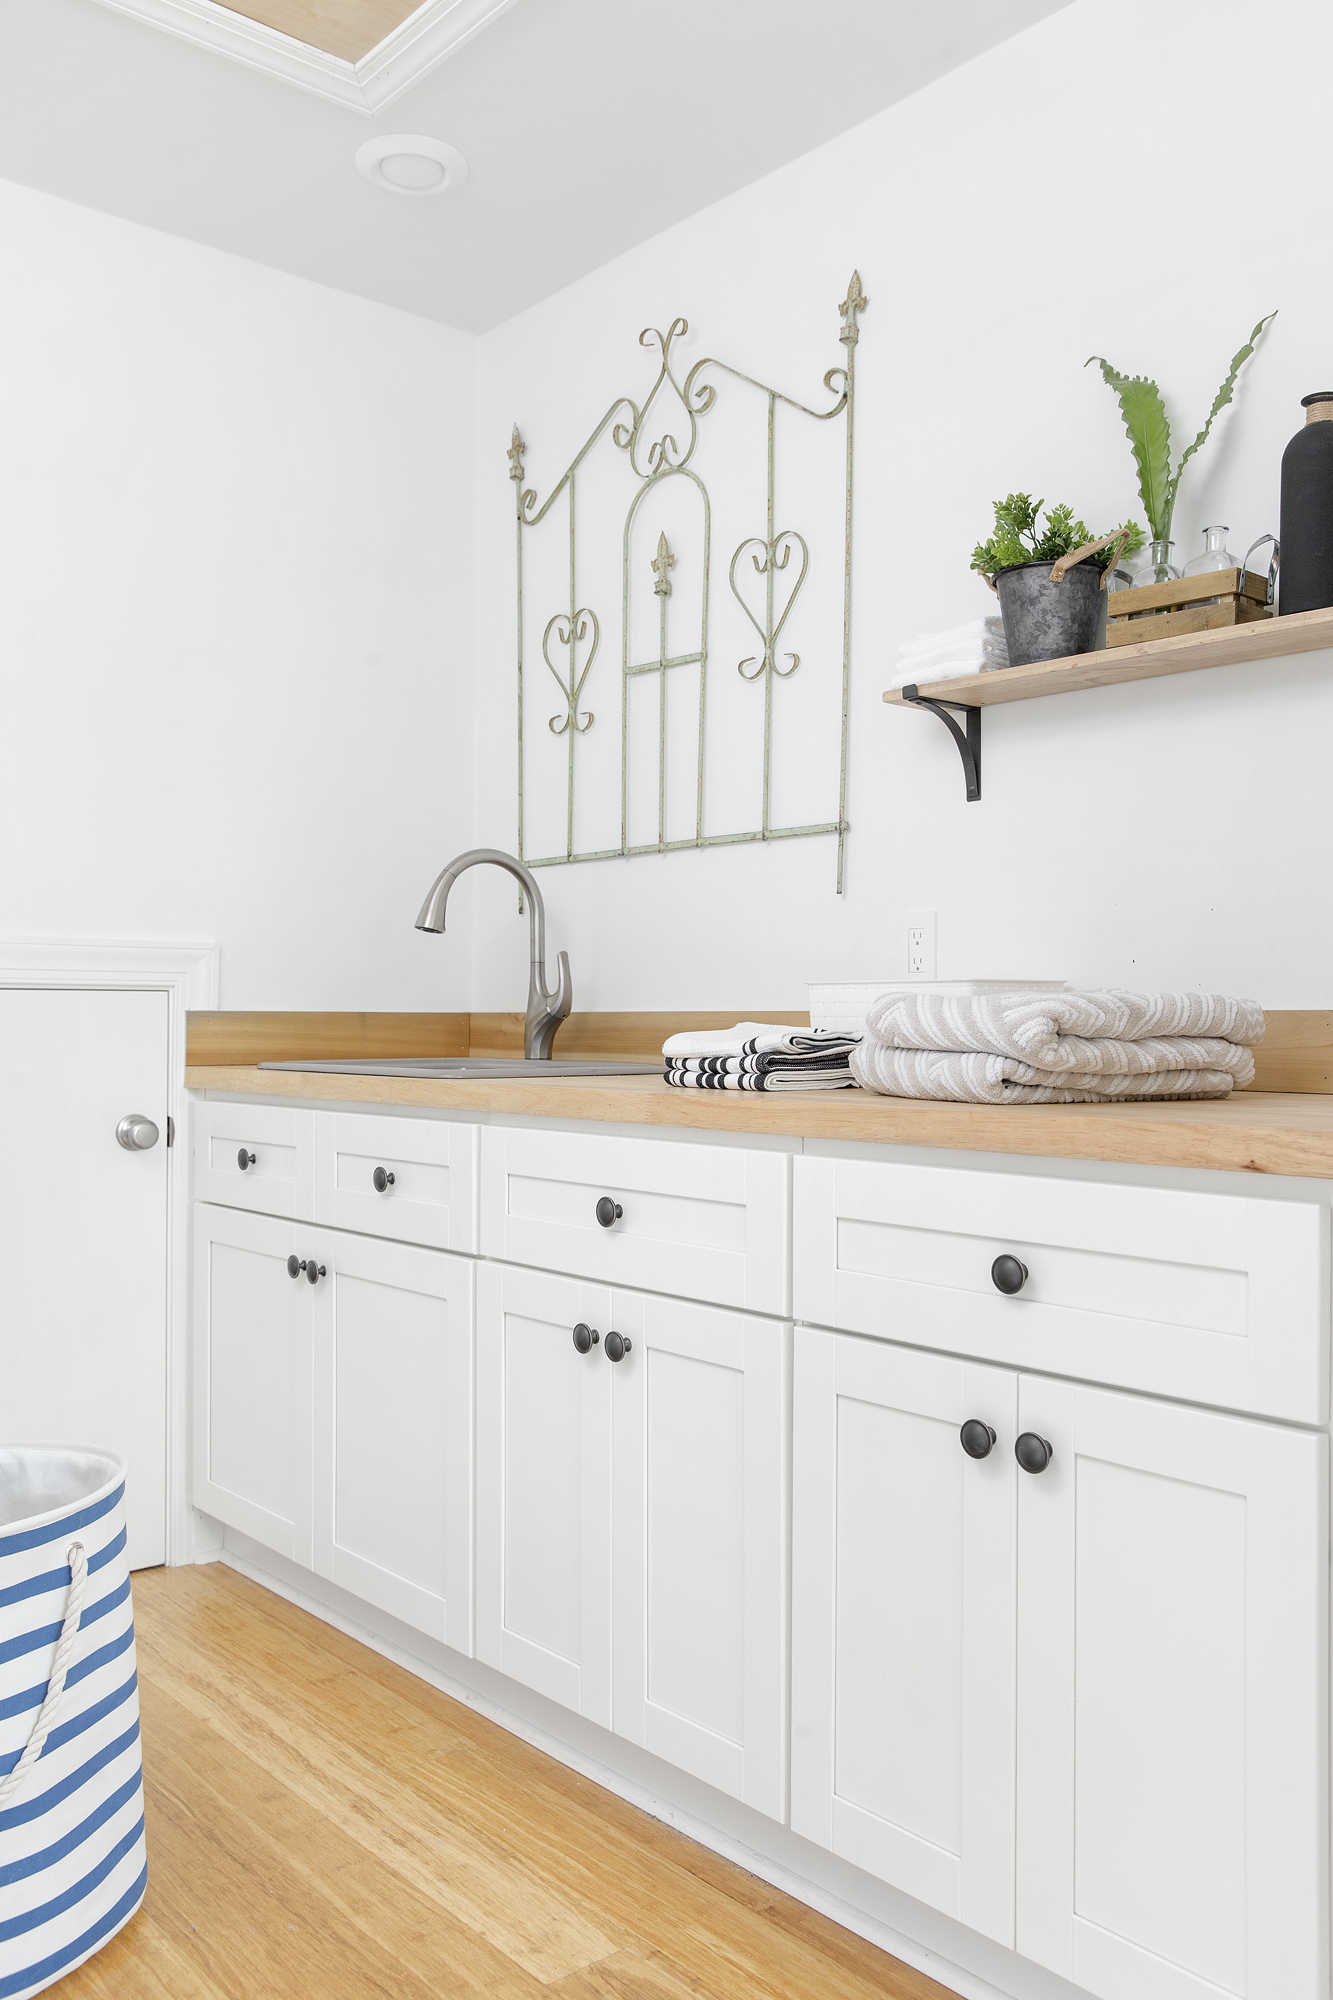 Trielle® pull-down faucet     River Falls™ utility sink     Simple décor and an accent of greenery create visual interest without cluttering the laundry space while a sleek pull-down faucet with multiple sprays is ideal for helping with cleaning tasks.